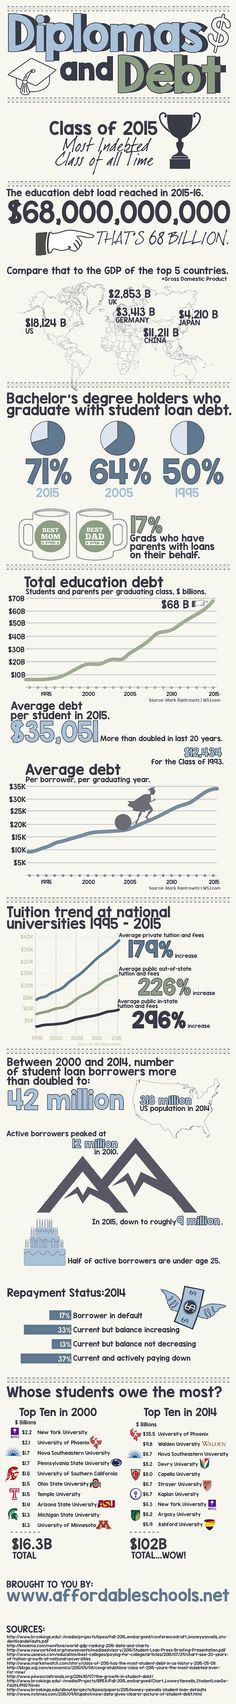 The class of 2015 has the highest debt of all time.